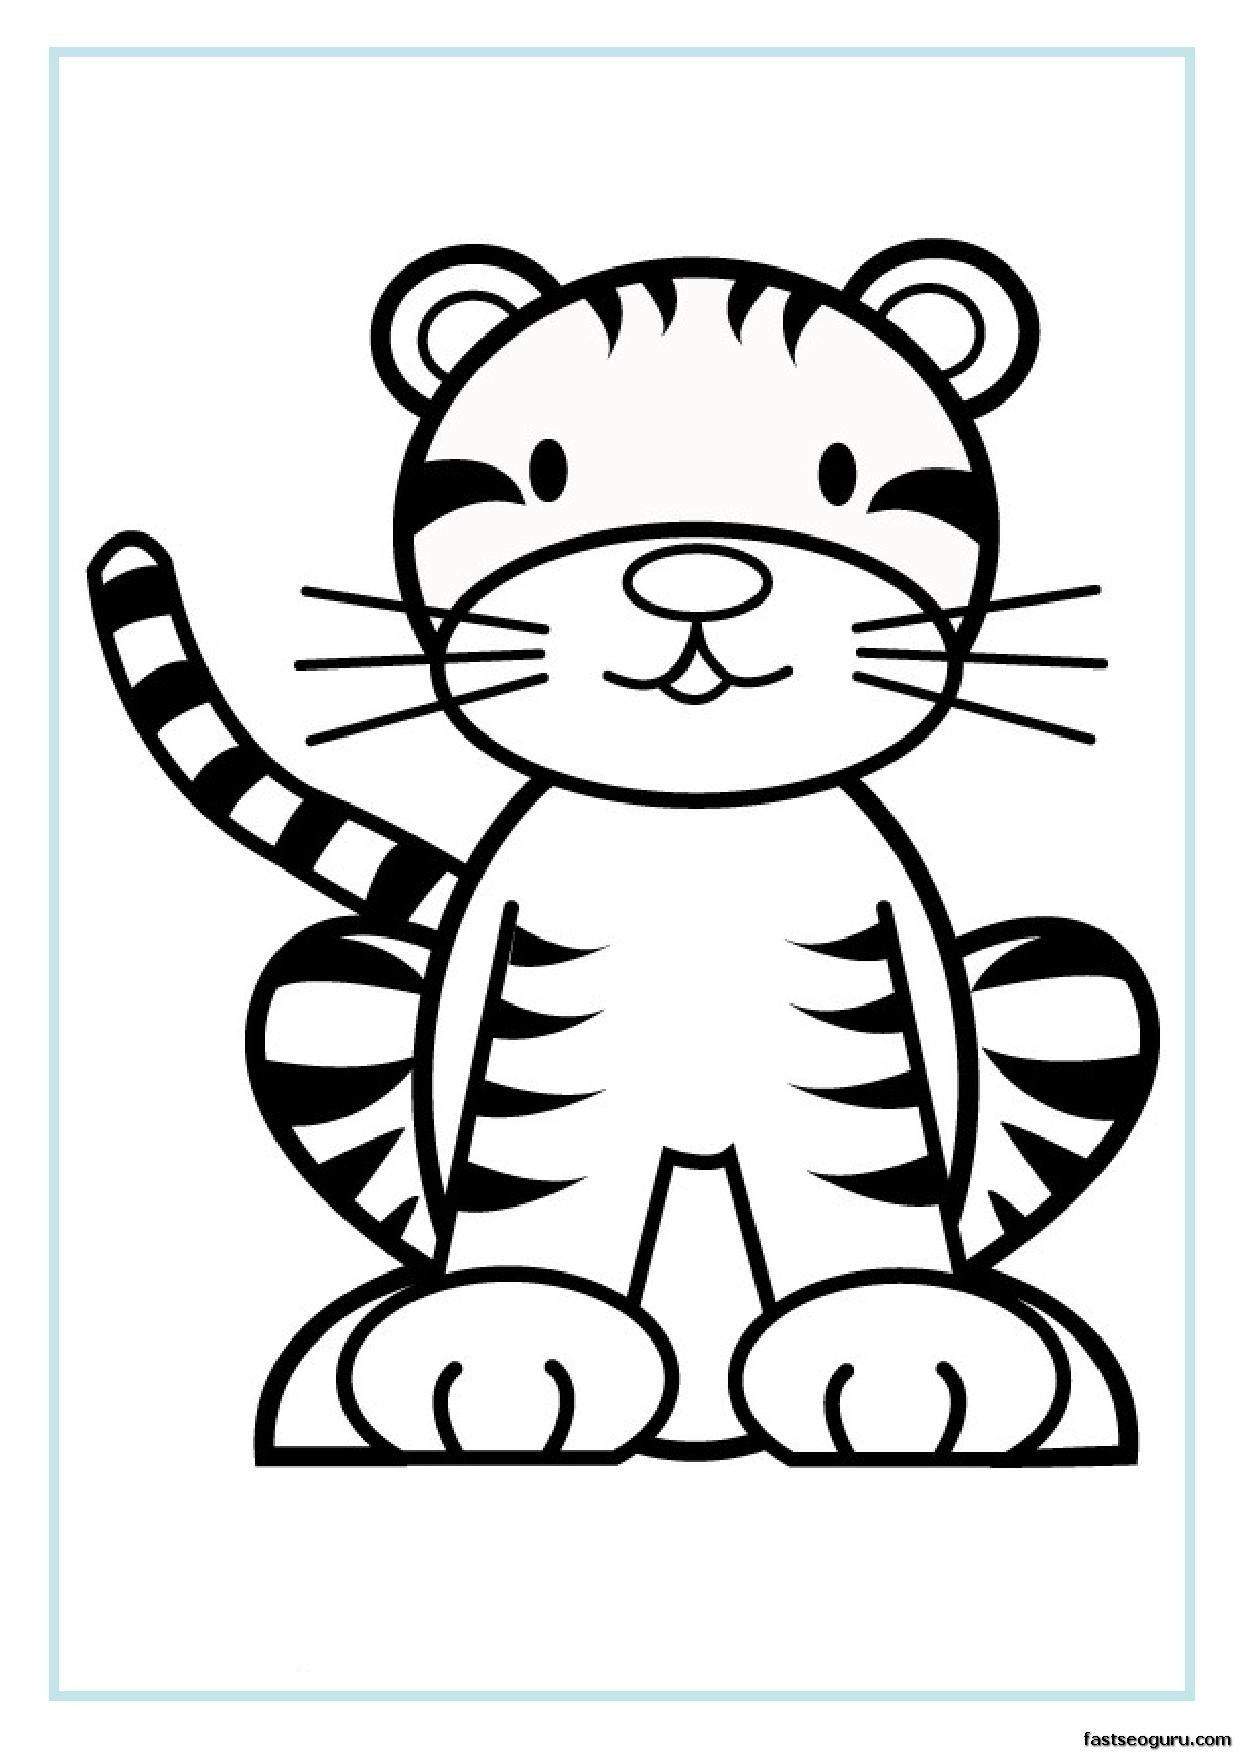 Free Printable Animal Tiger Baby Colouring Sheet For Kids Kids